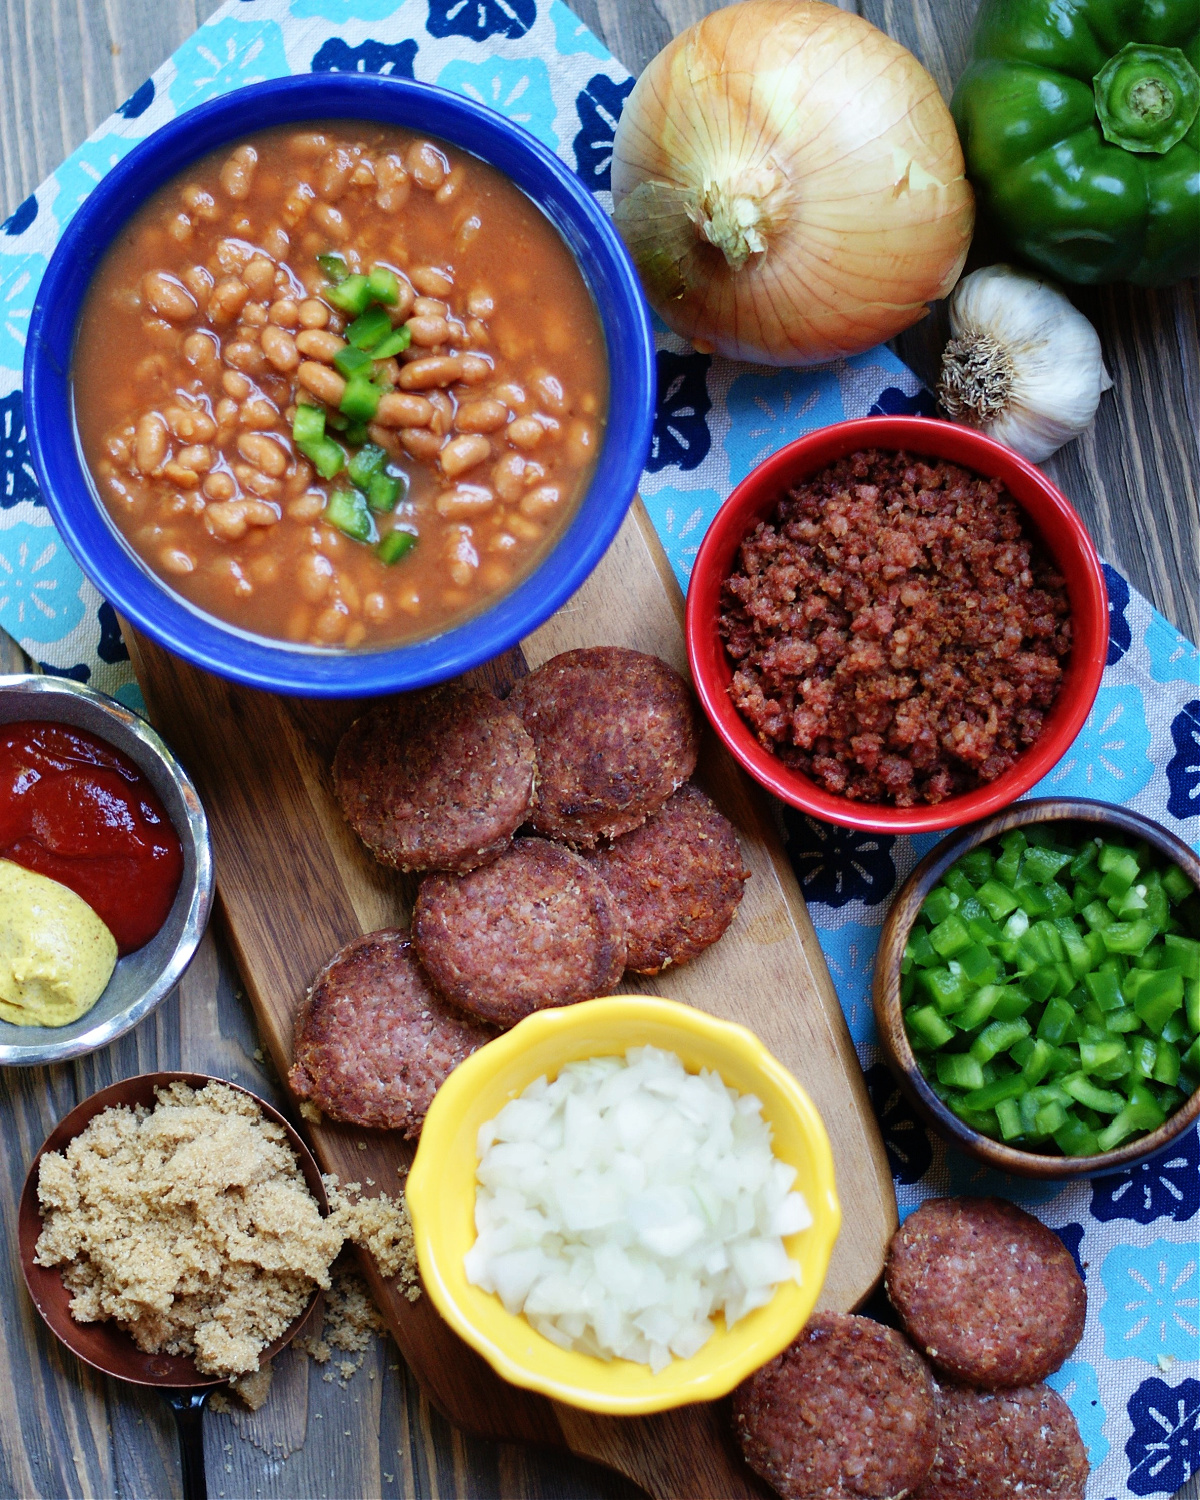 Ingredients needed to make baked beans and ground sausage